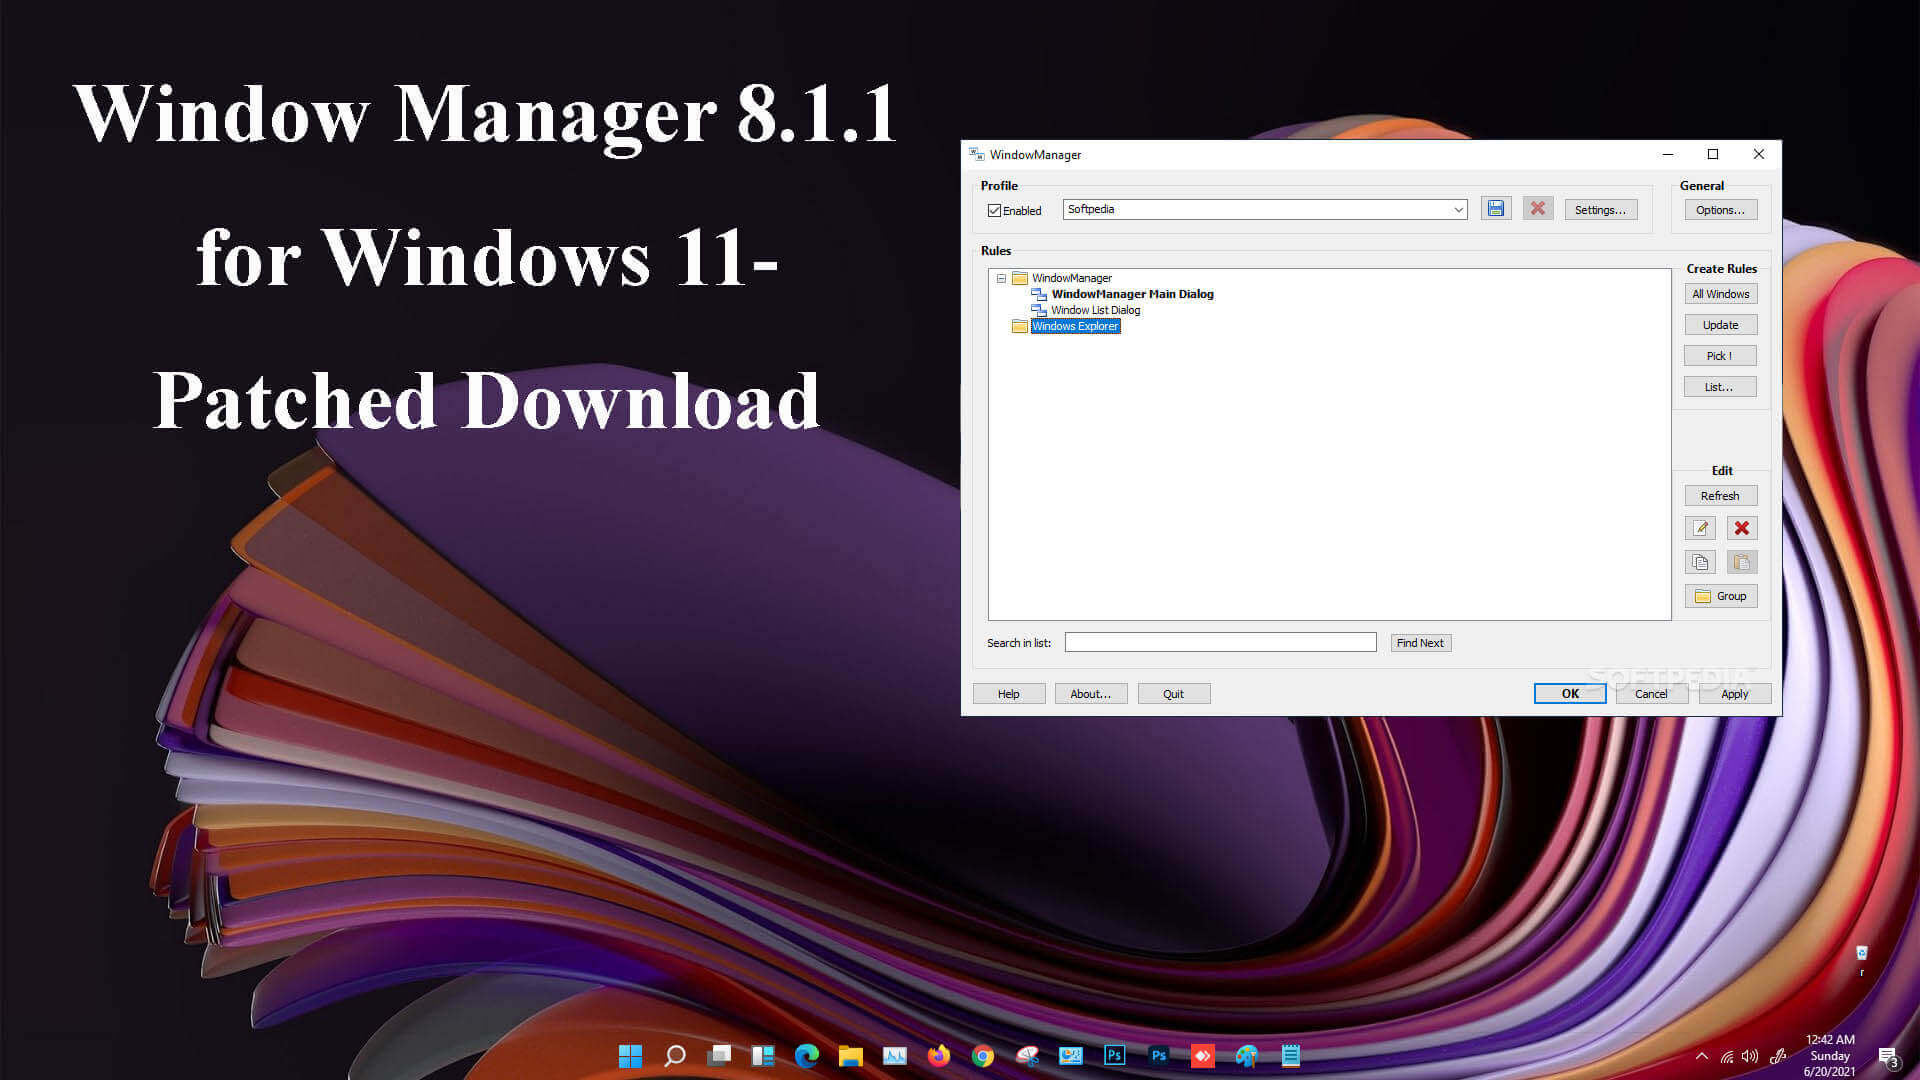 WindowManager [8.1.1] download